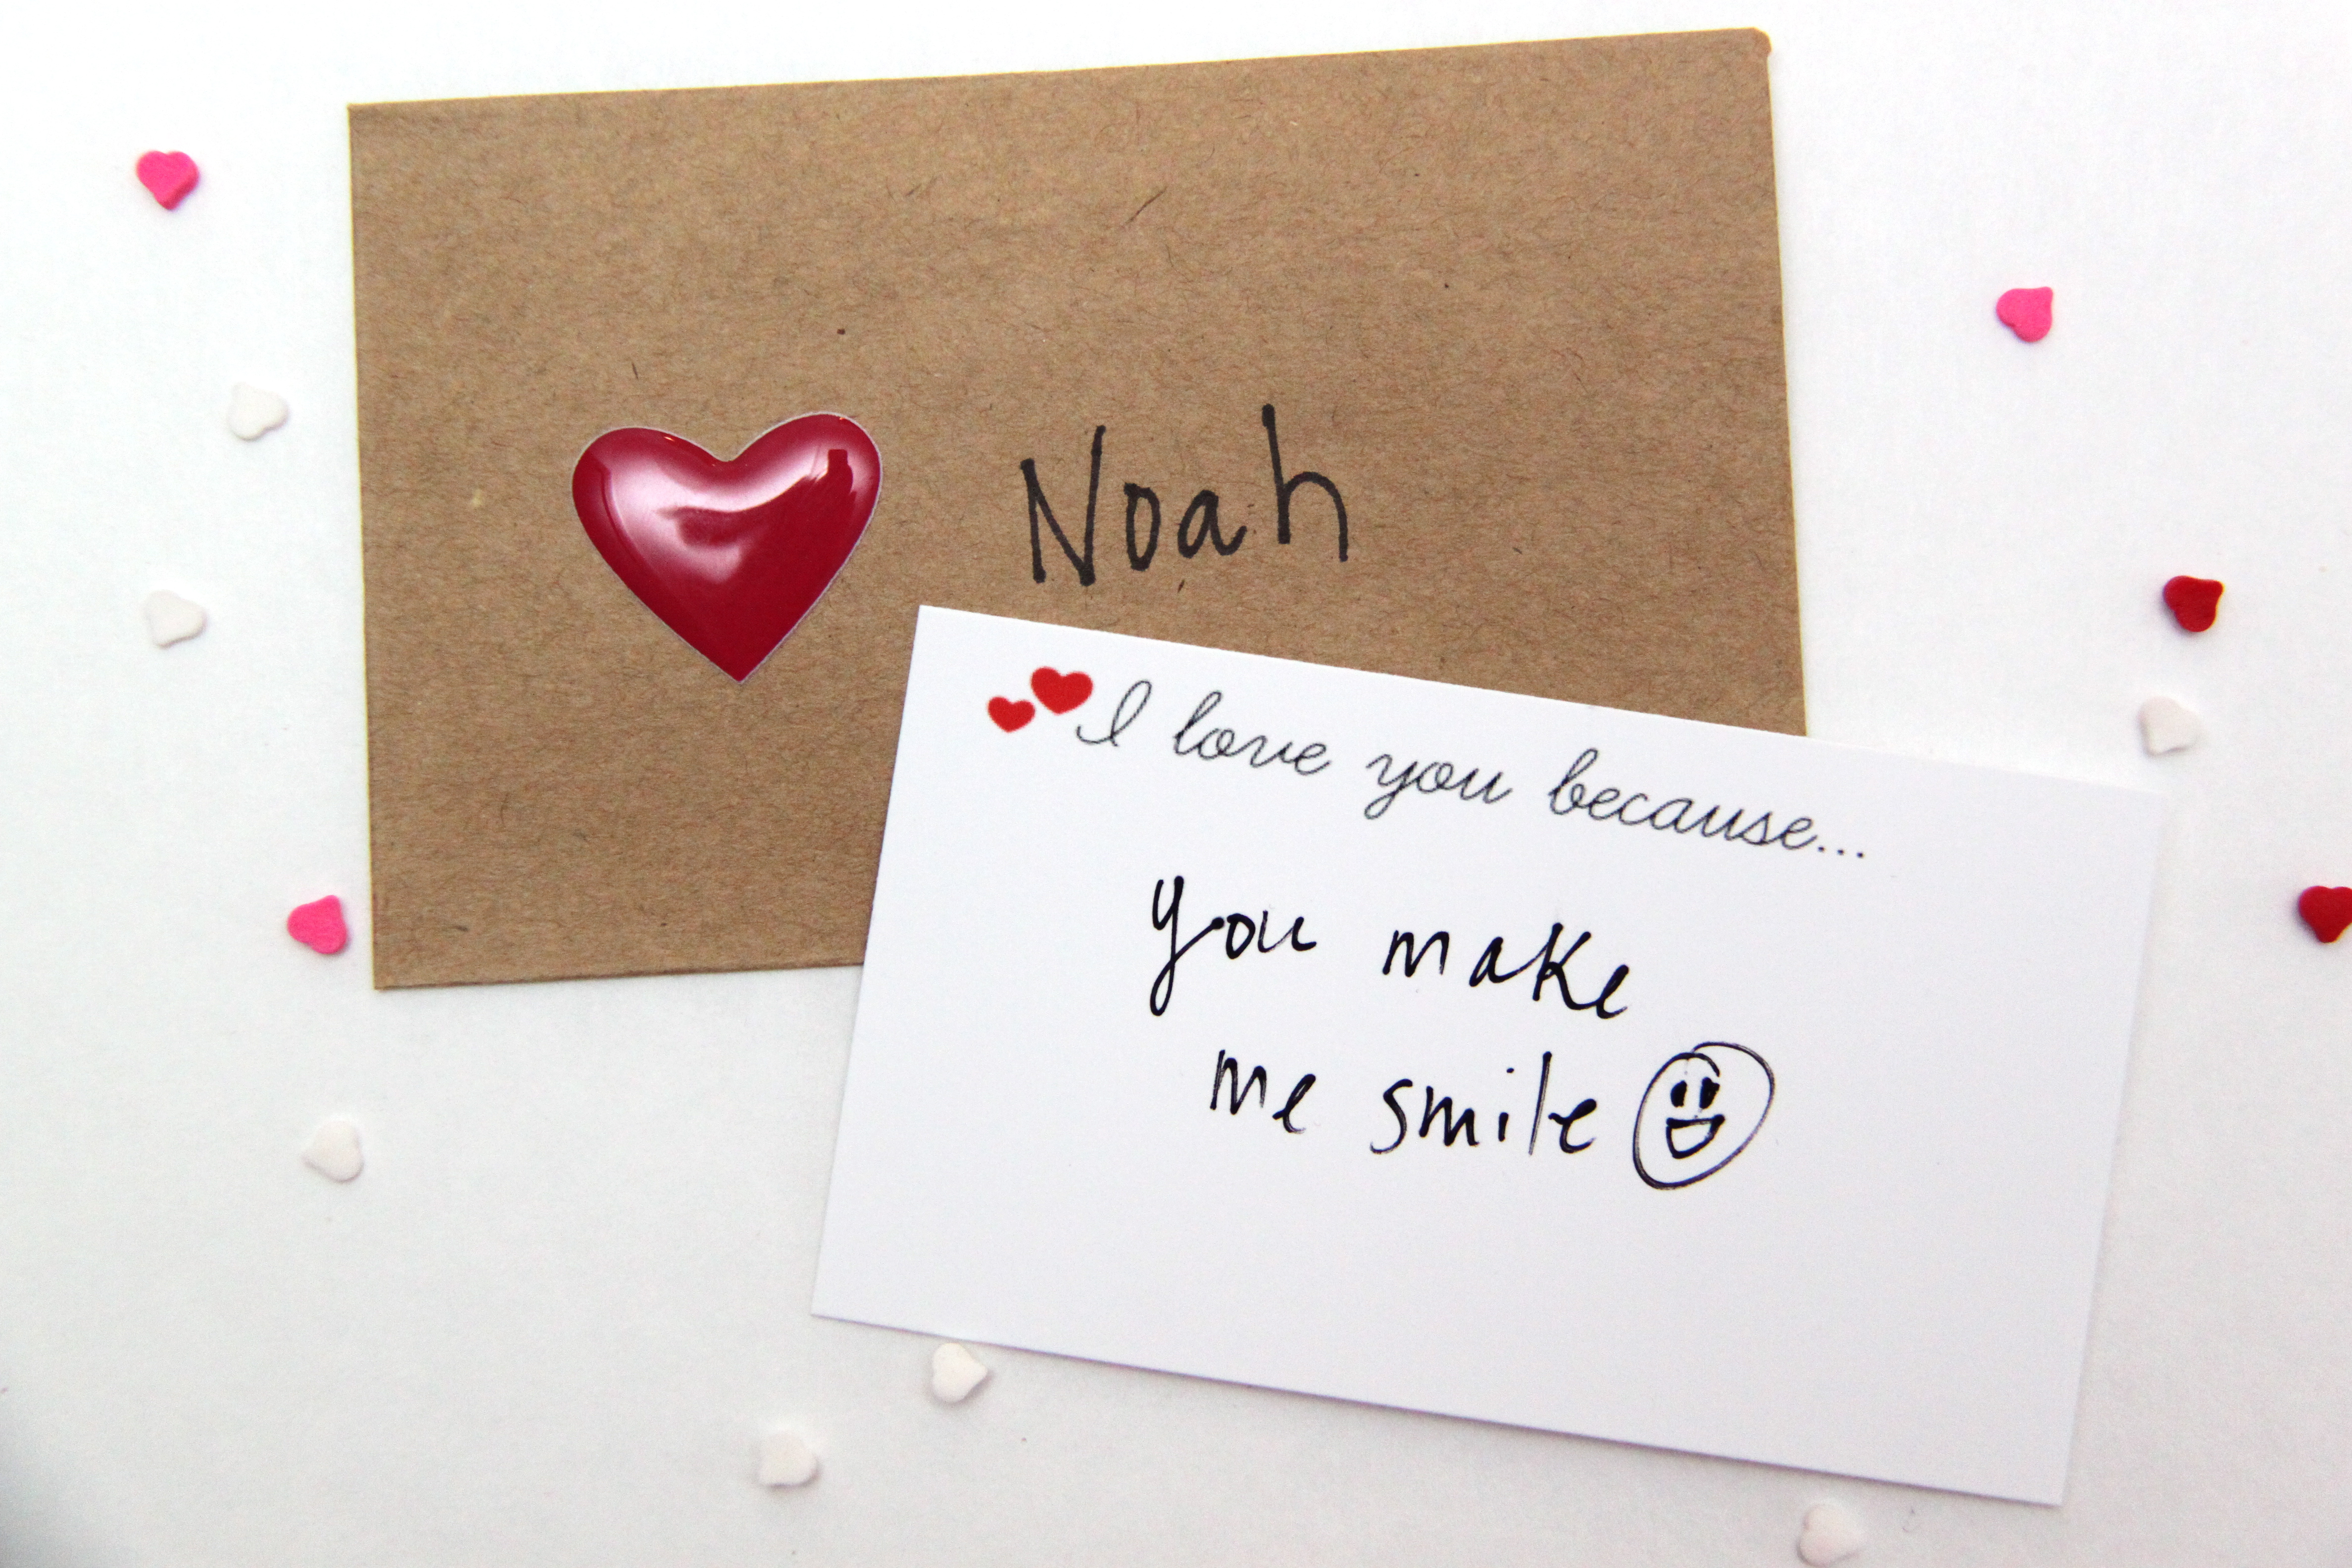 I Love You Because...Free Printable Notecards - Smashed ...